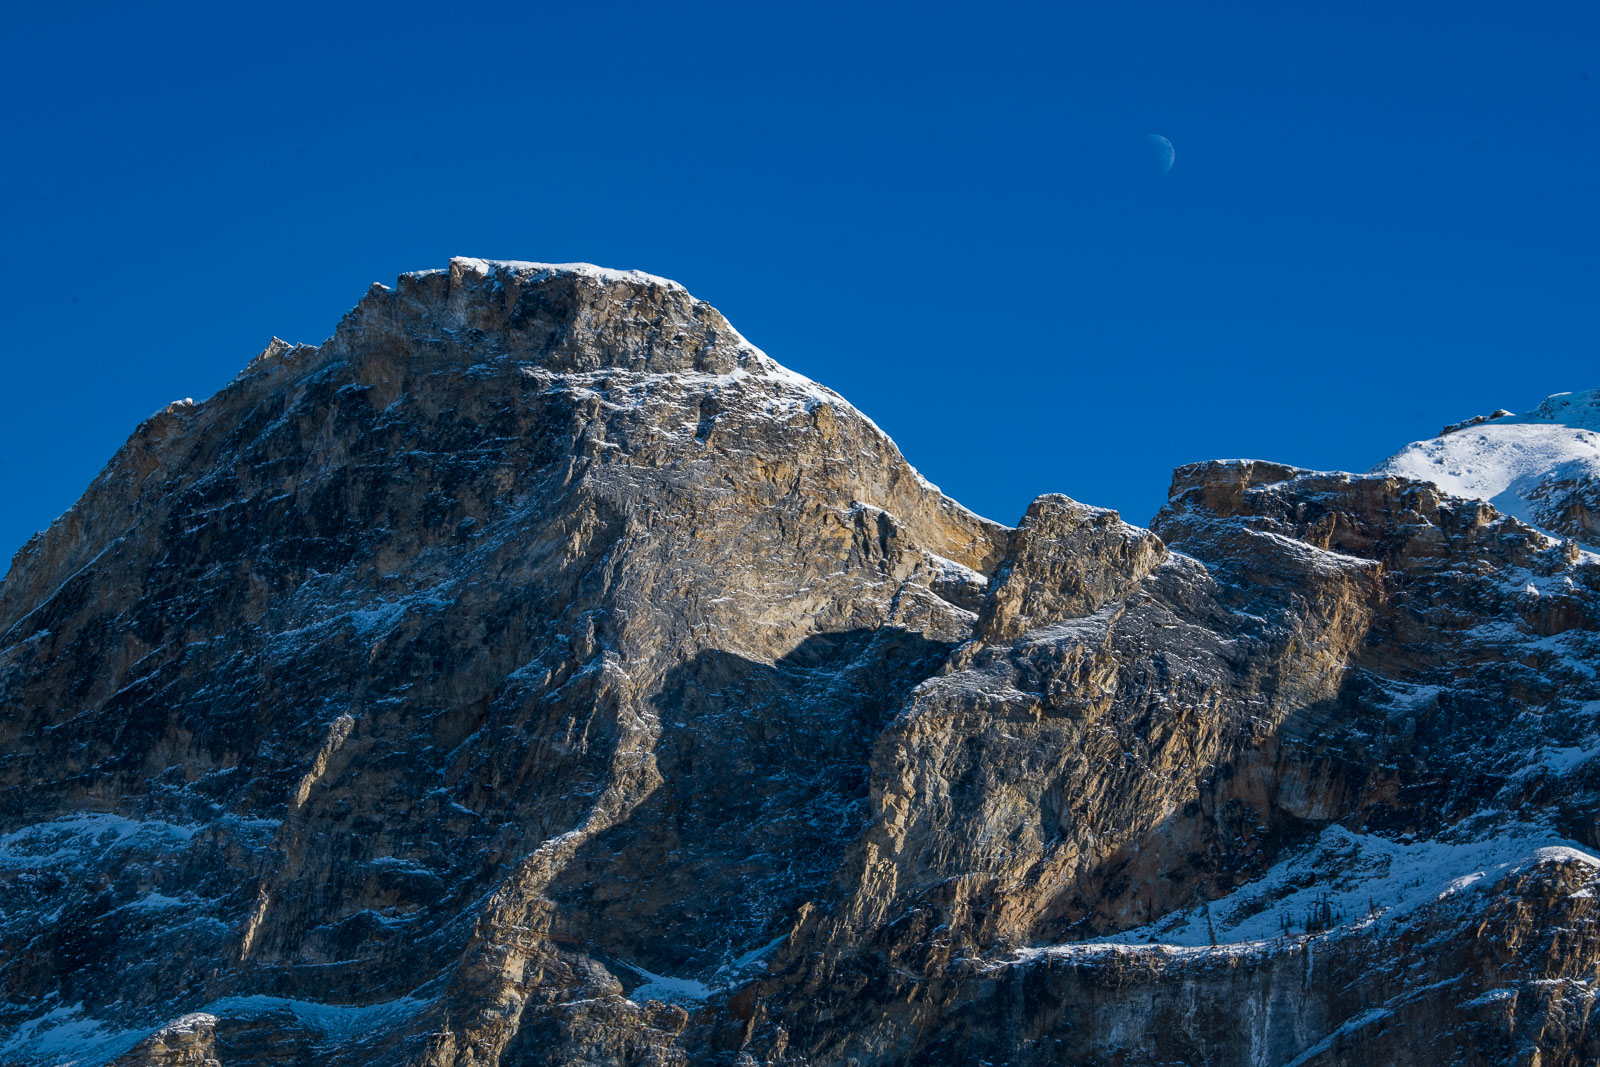 The moono floats over a section of Mt. Sukakpak in the Brooks Range of Alaska.